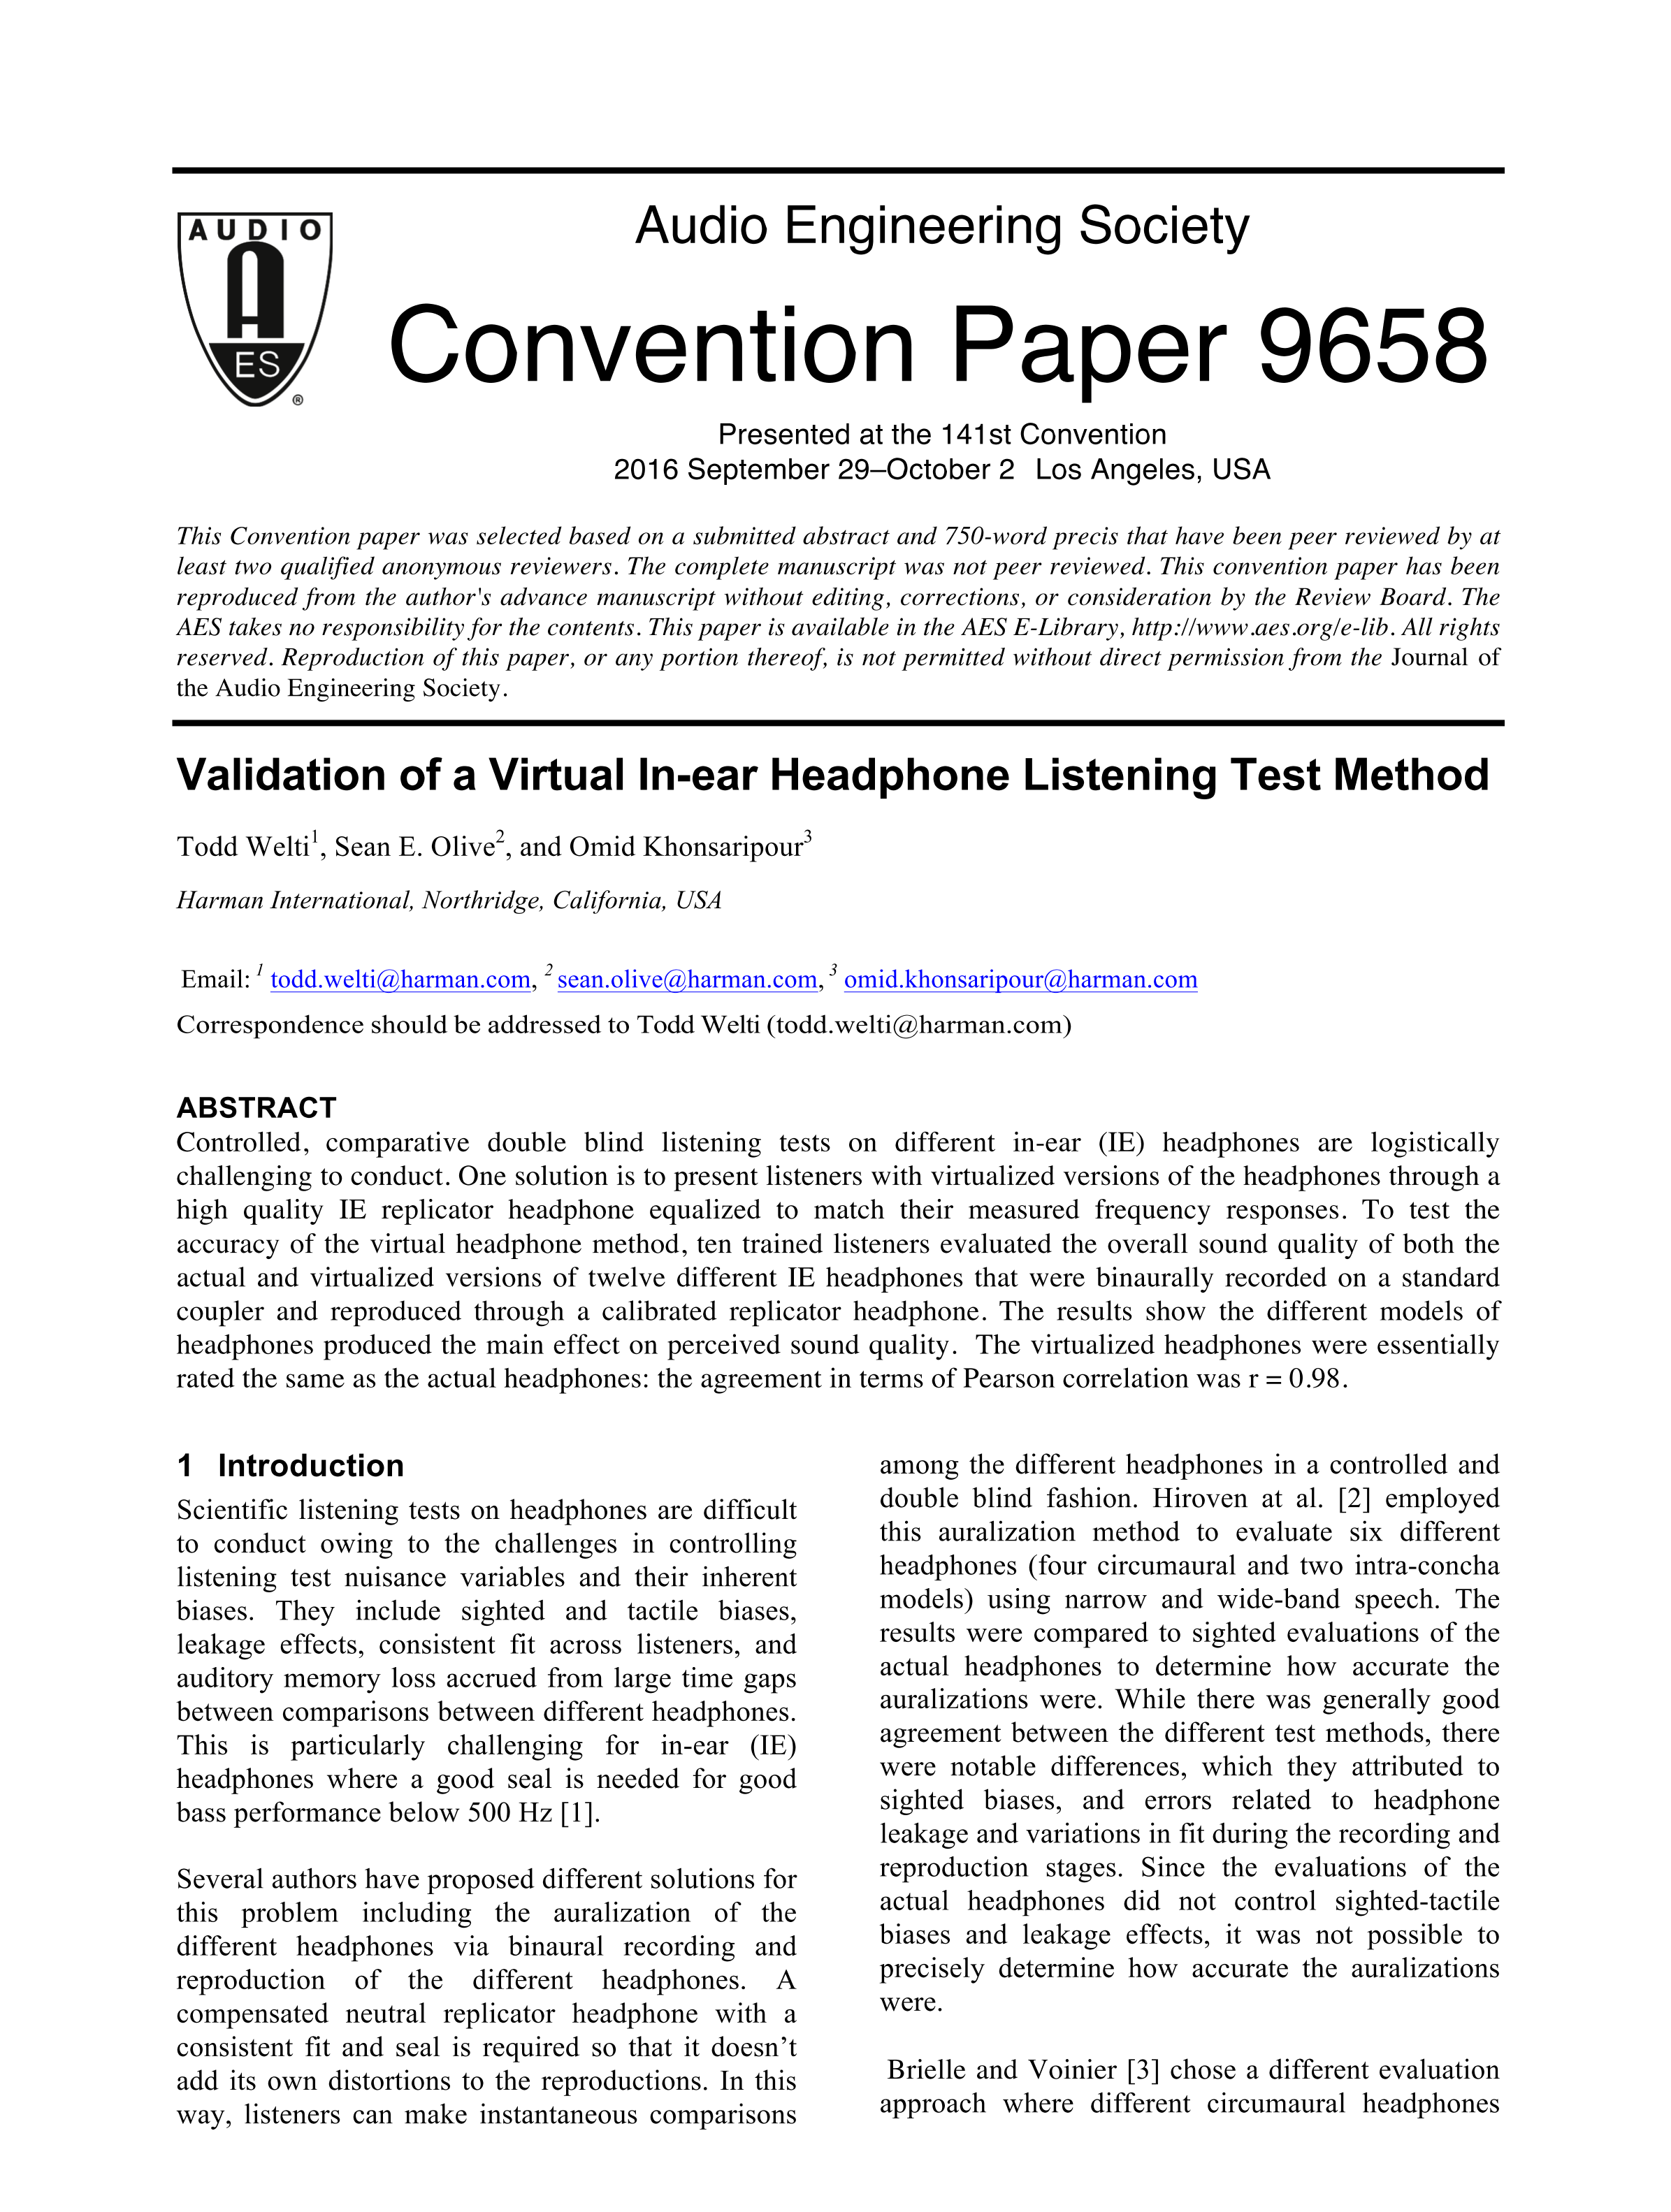 AES E-Library » Validation of a Virtual In-Ear Headphone Listening